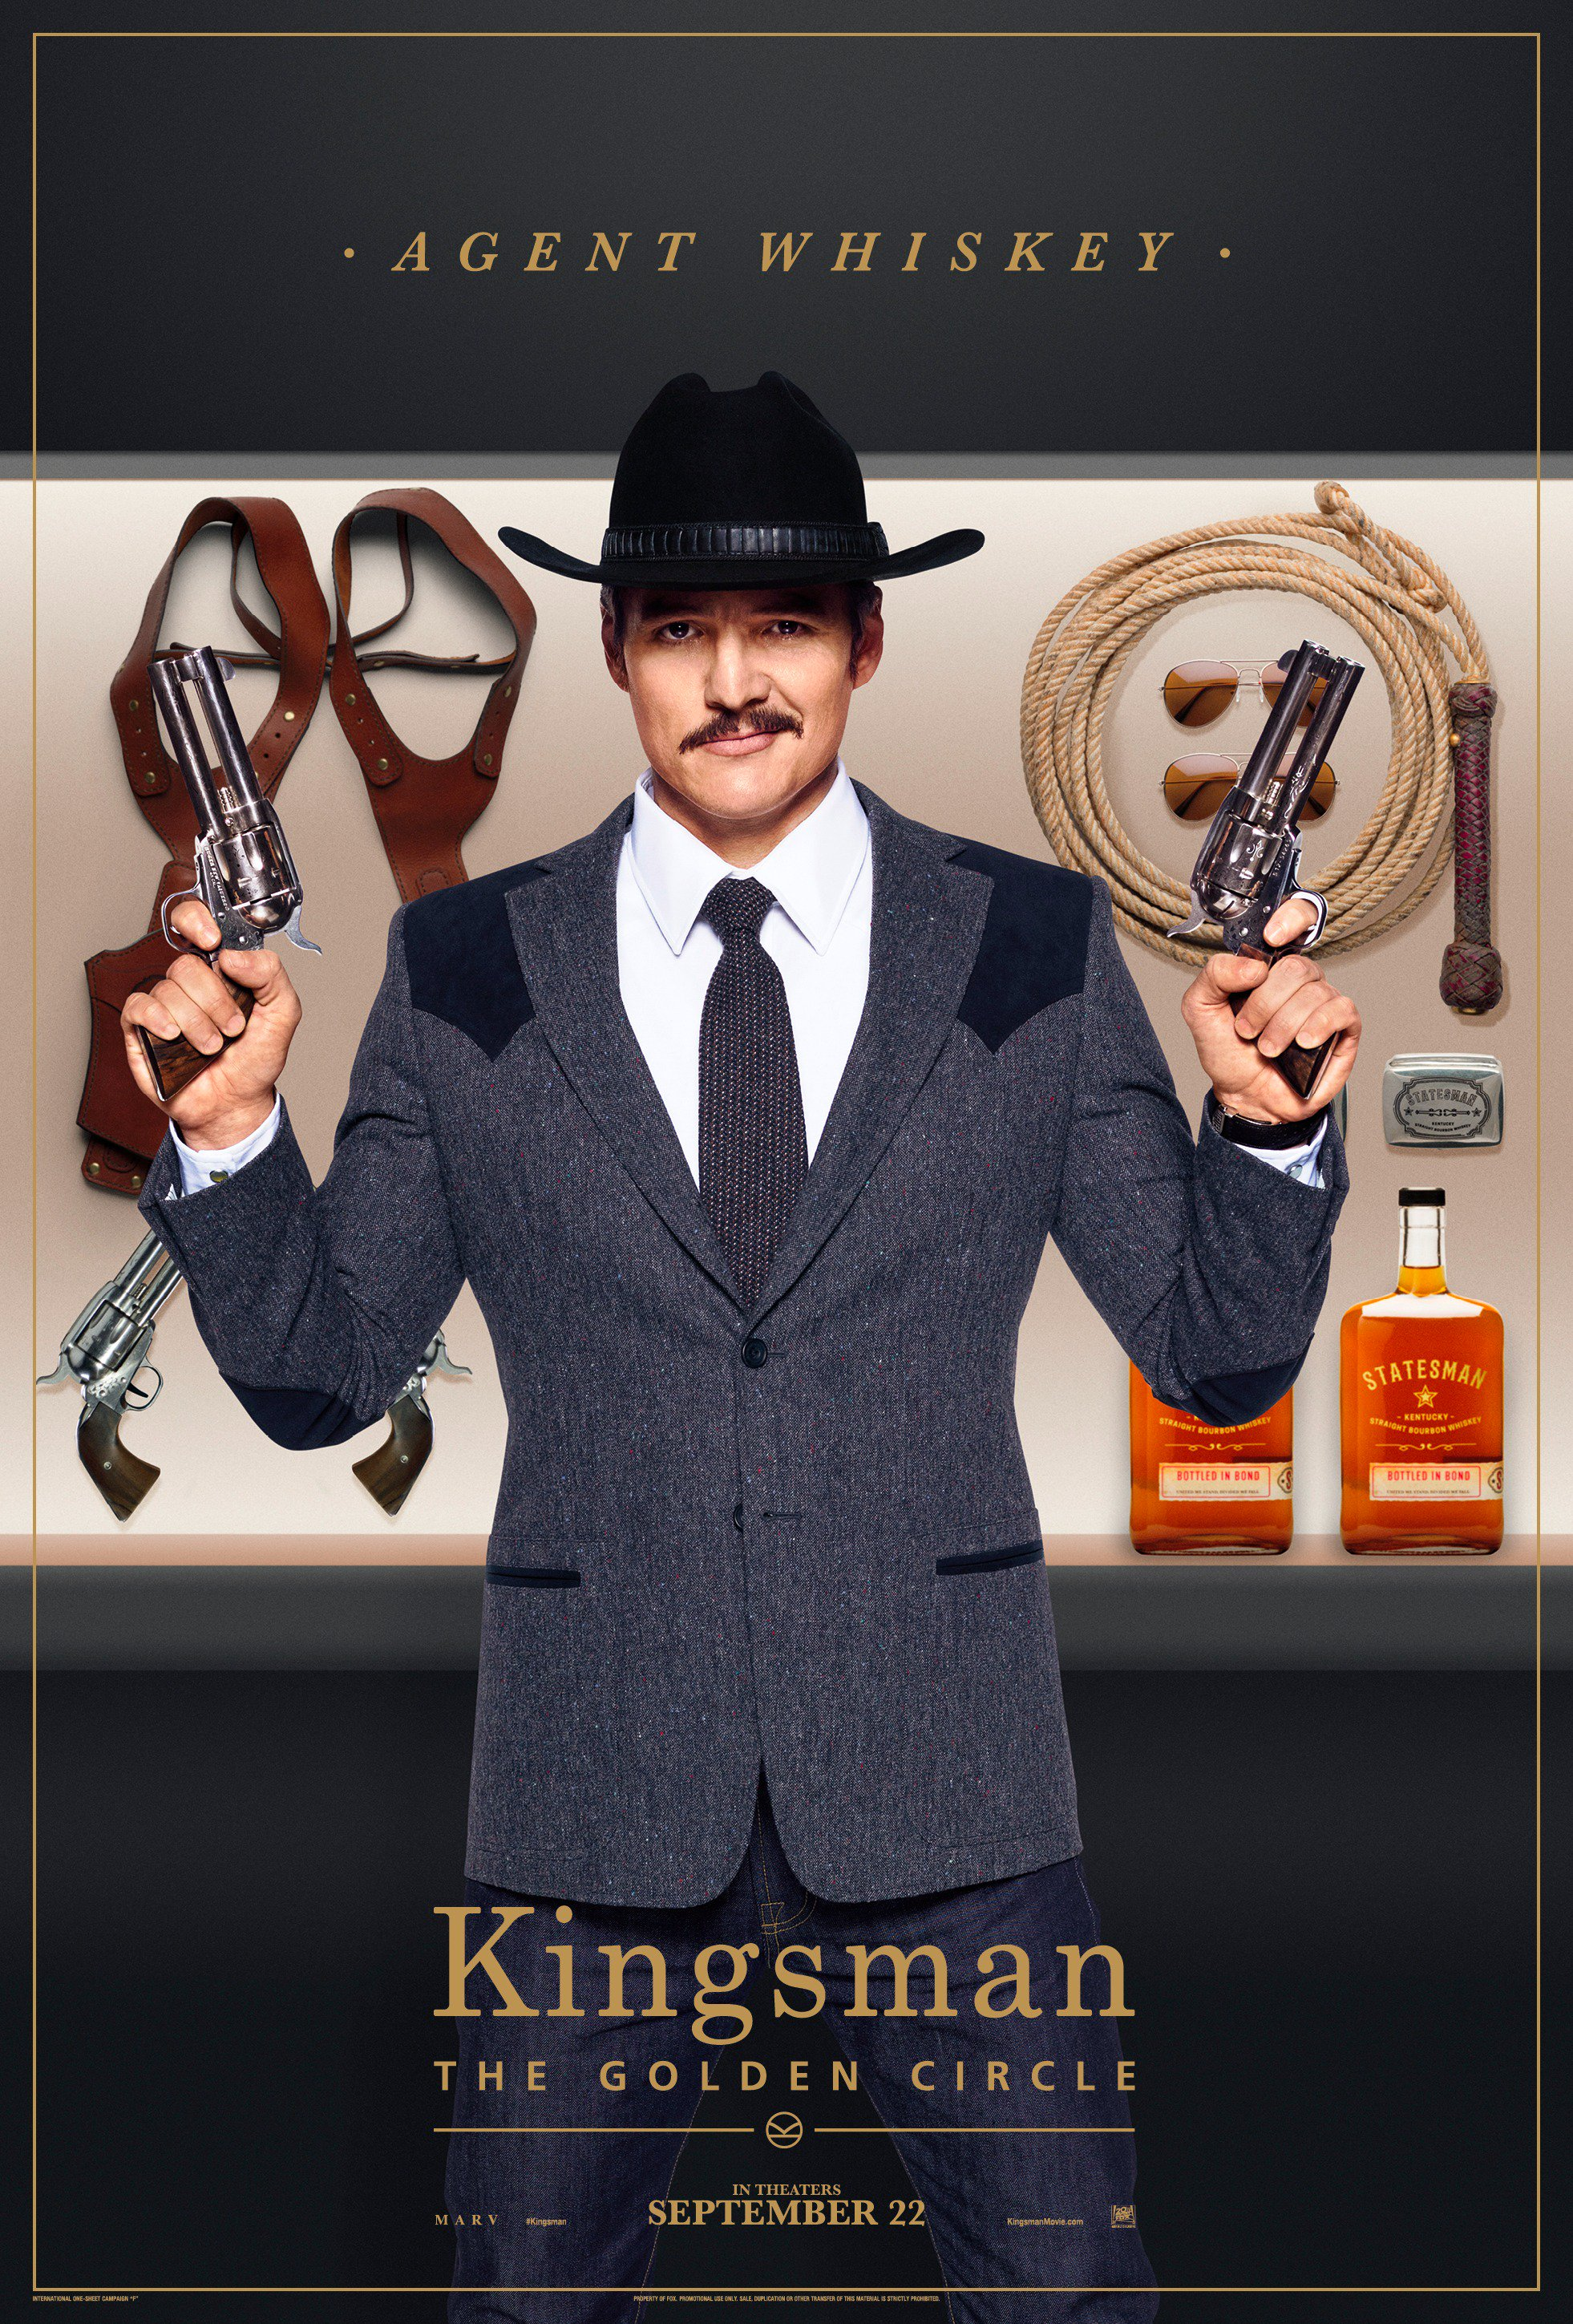 Kingsman Golden Circle karakterposters Whiskey